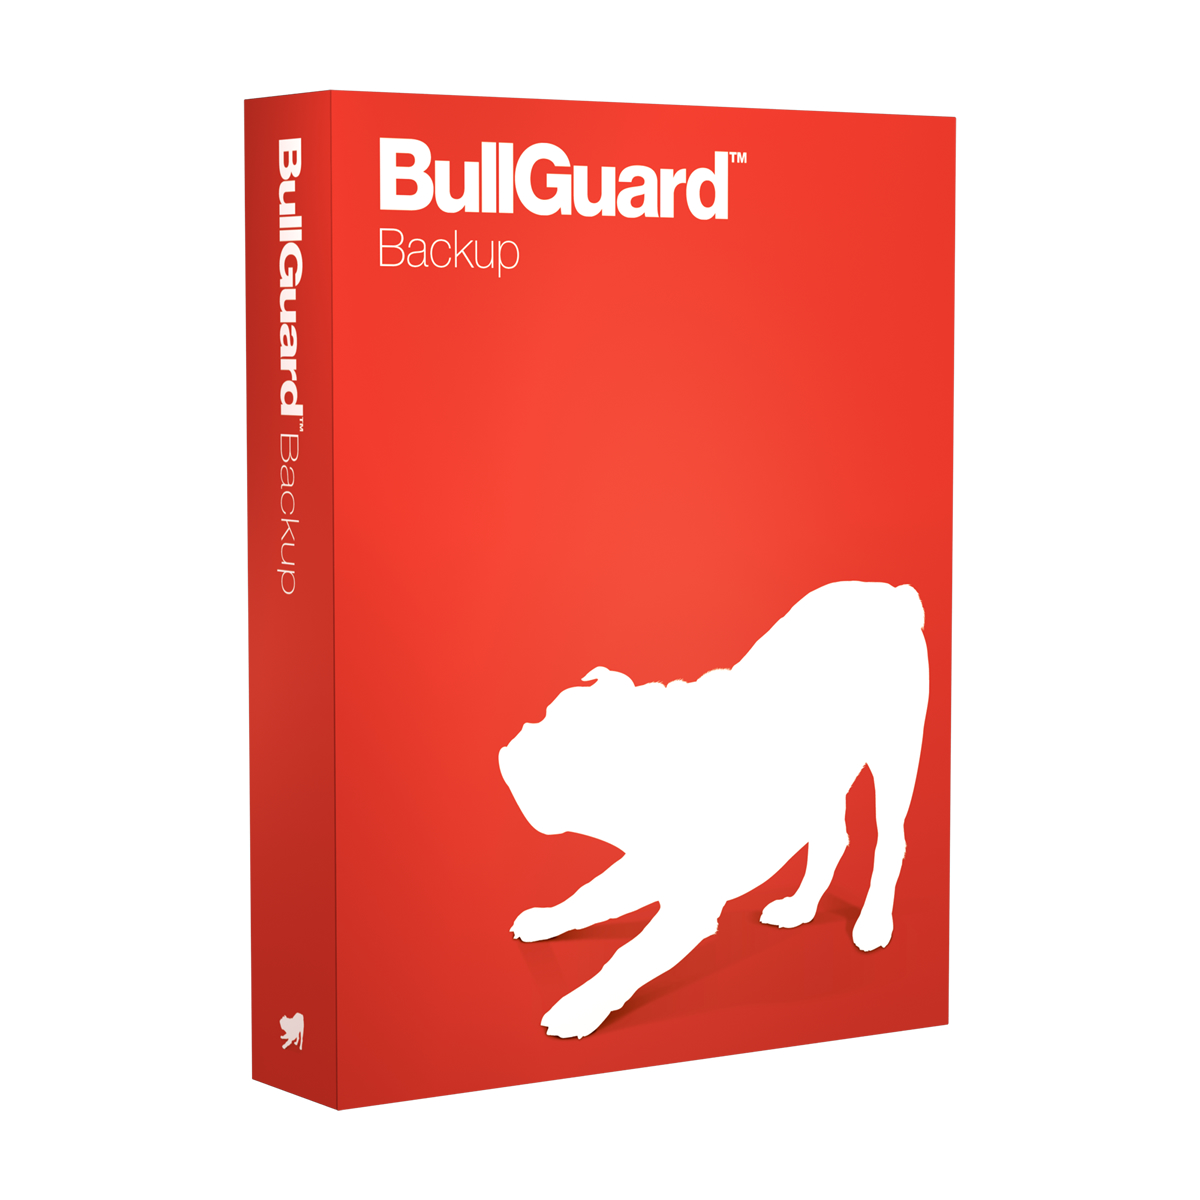 Bullguard offers online backup solution with Bullguard Backup